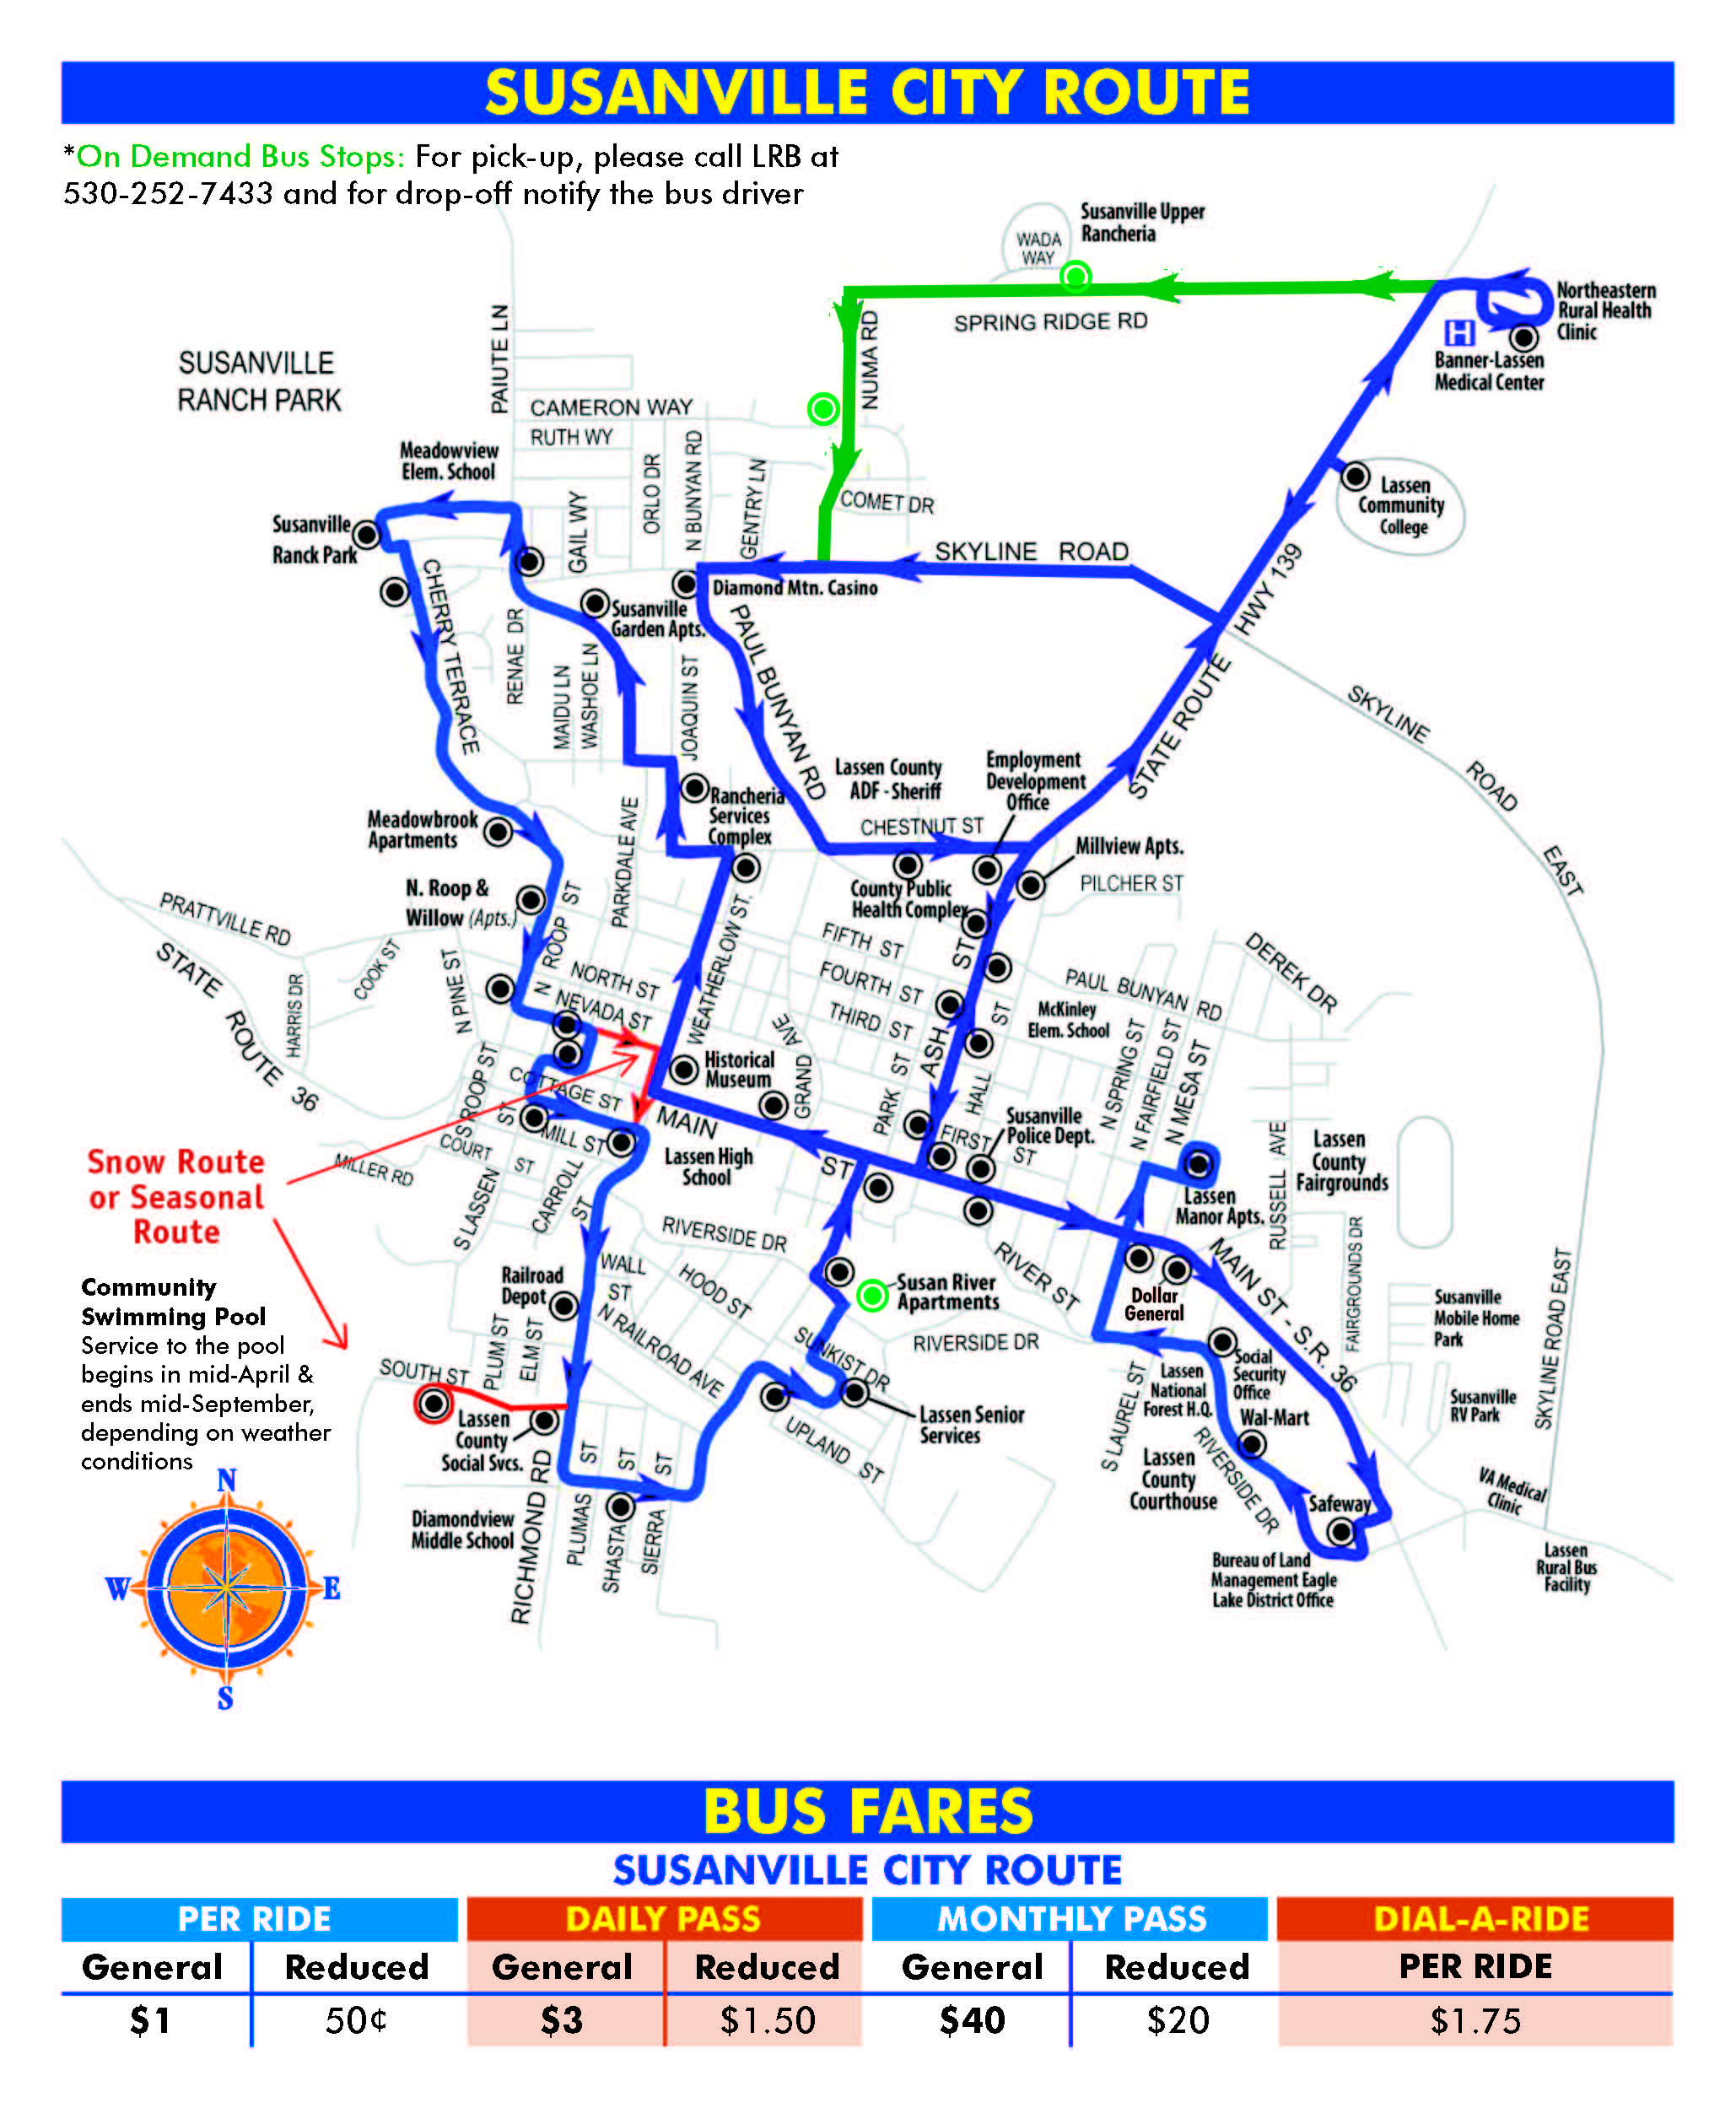 Susanville City Route